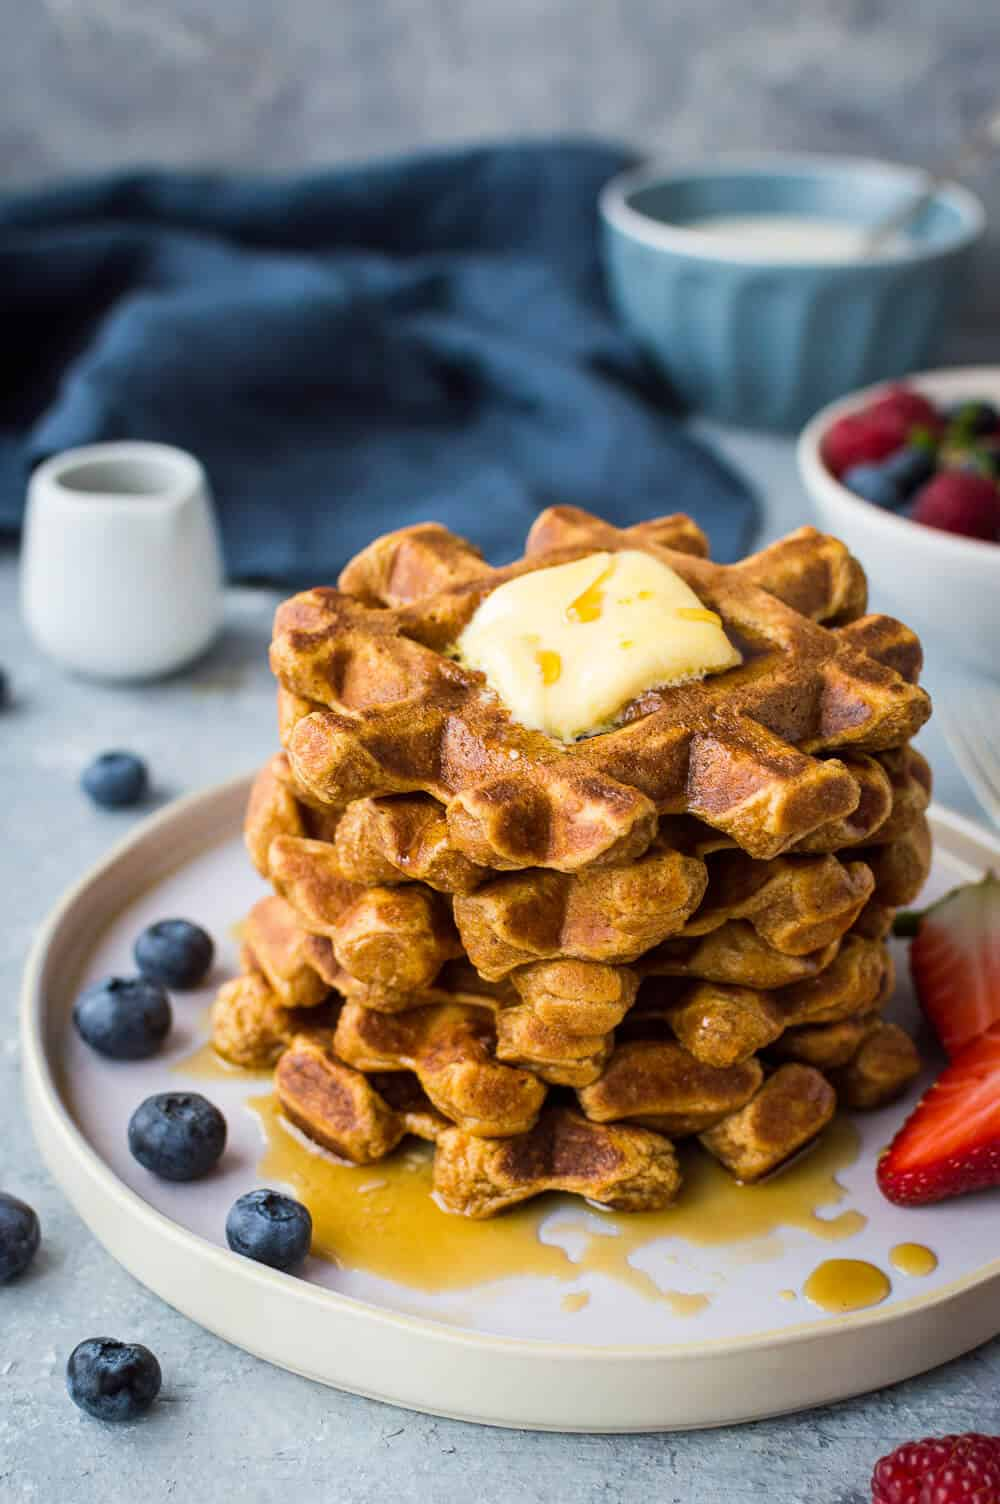 A stack of healthier sweet potato waffles with butter, maple syrup and berries.